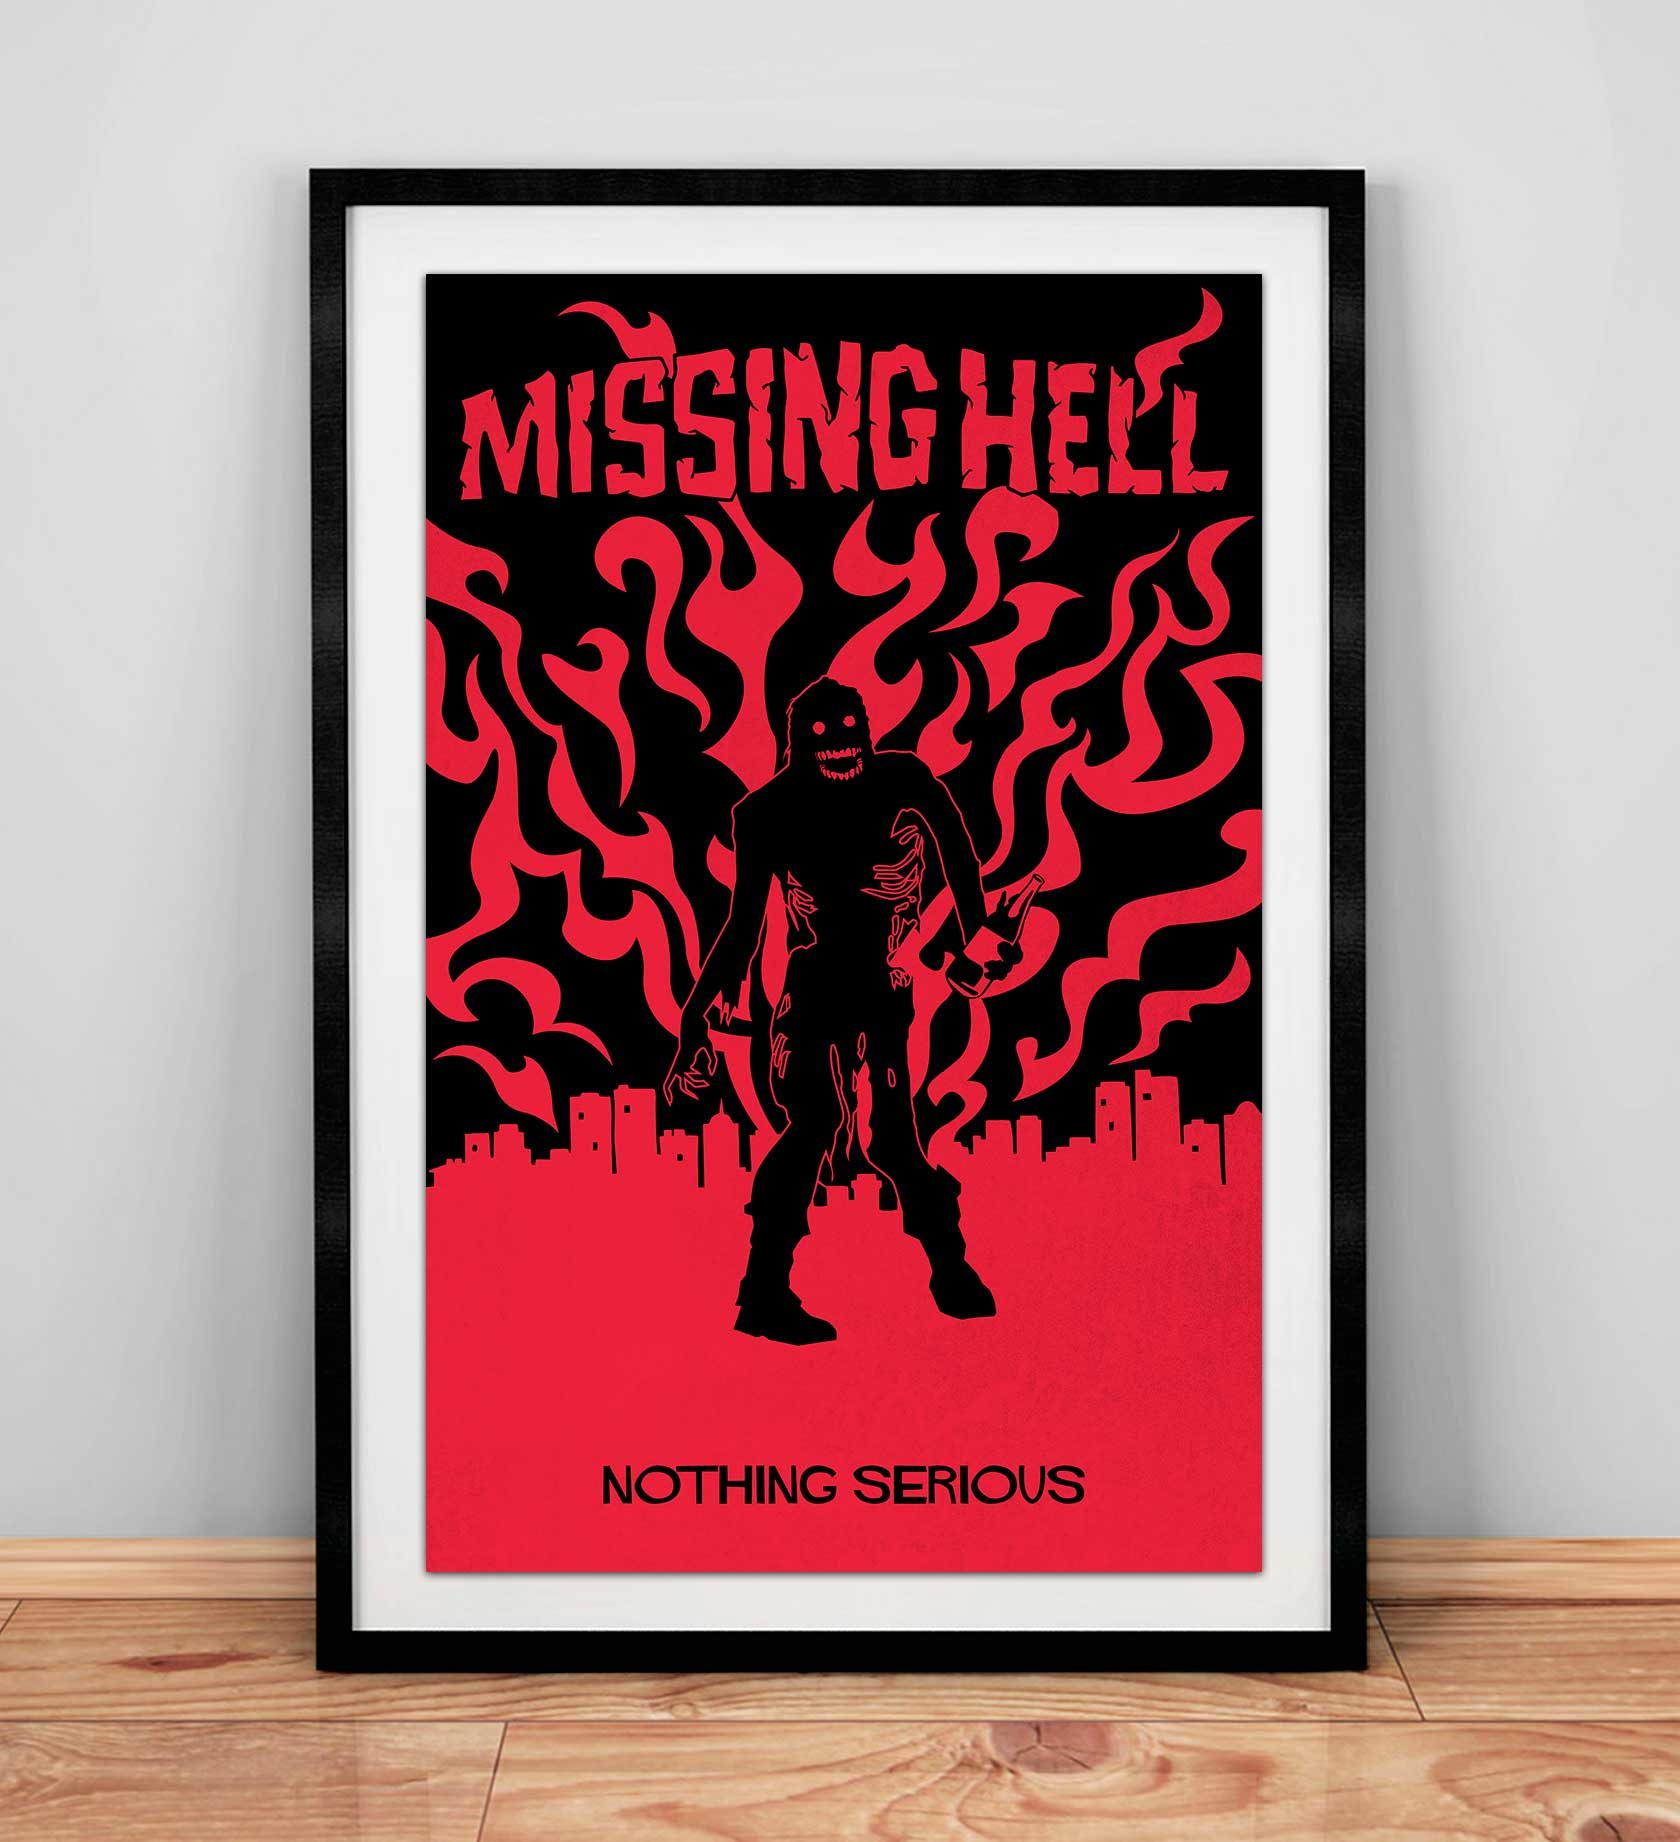 Nothing Serious Poster Design 3 by Furia